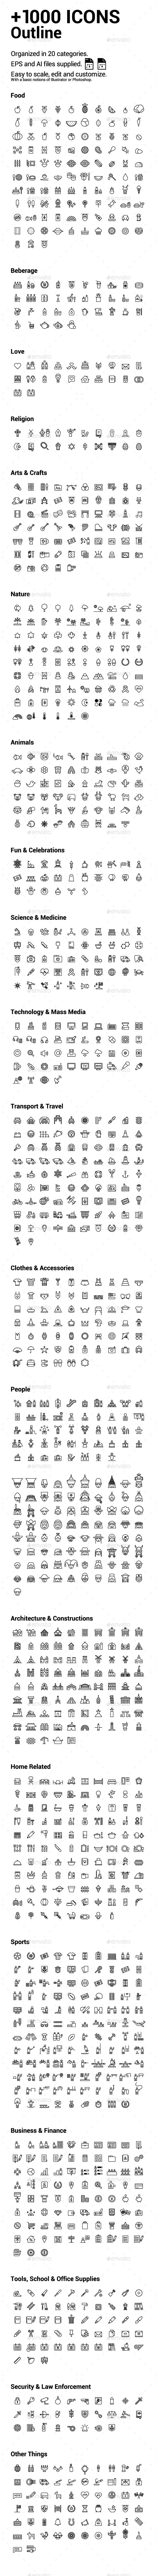 +1000 Outline Icons  — EPS Template #inspiration #graphic #medical • Download ➝ https://graphicriver.net/item/1000-outline-icons/18640820?ref=pxcr